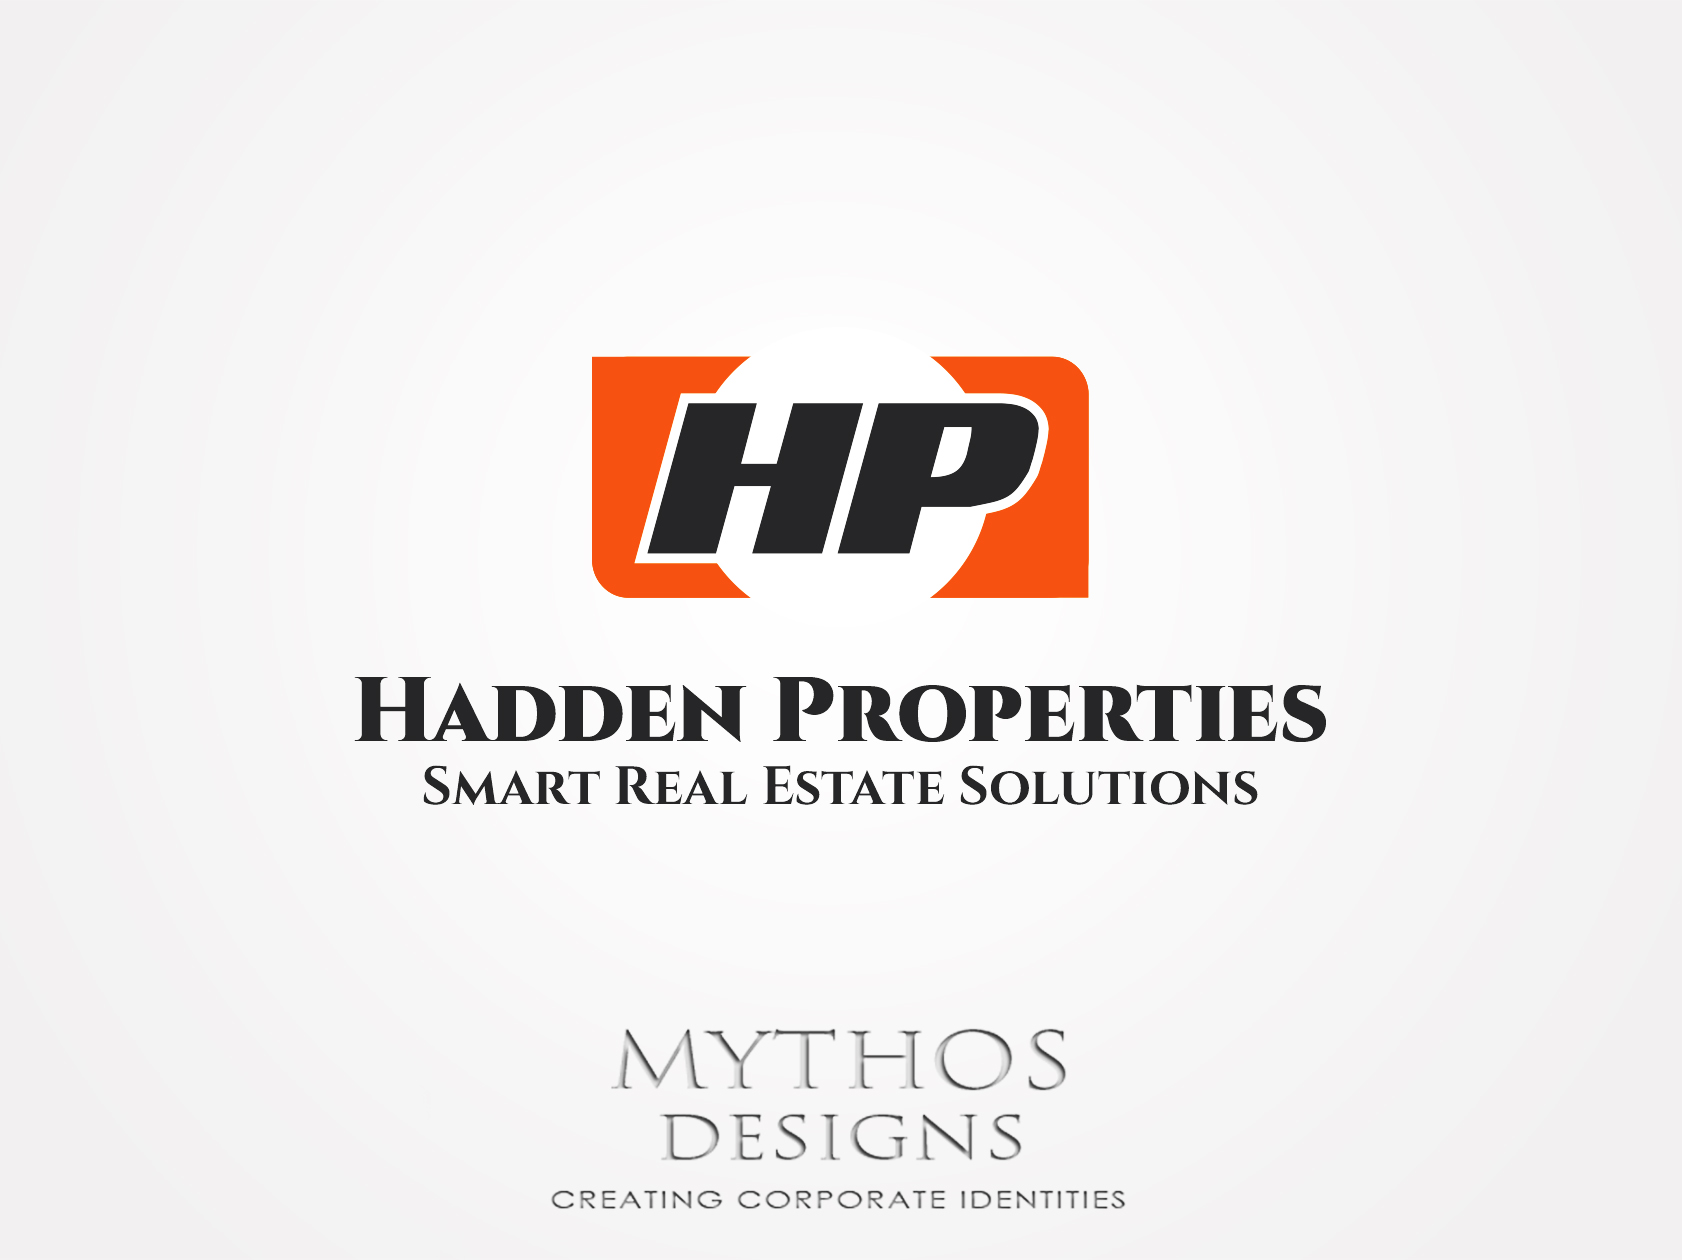 Logo Design by Mythos Designs - Entry No. 76 in the Logo Design Contest Artistic Logo Design for Hadden Properties.